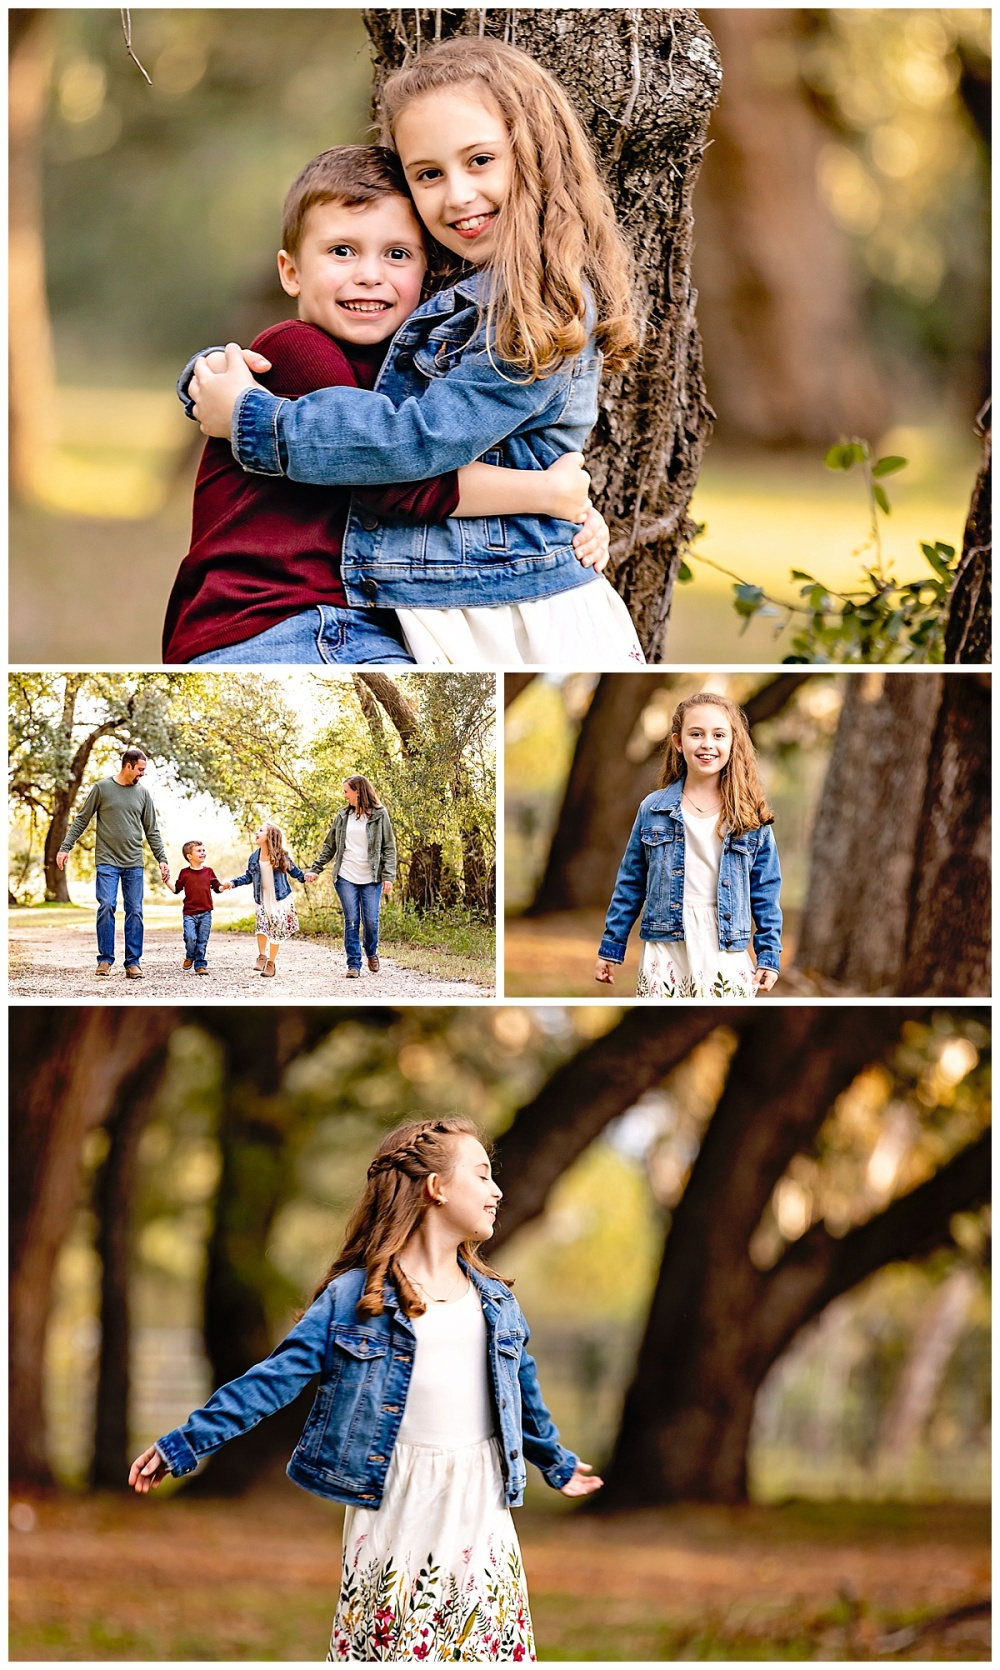 Family-Photographer-LaVernia-Texas-Carly-Barton-Photography-Latham_0003.jpg